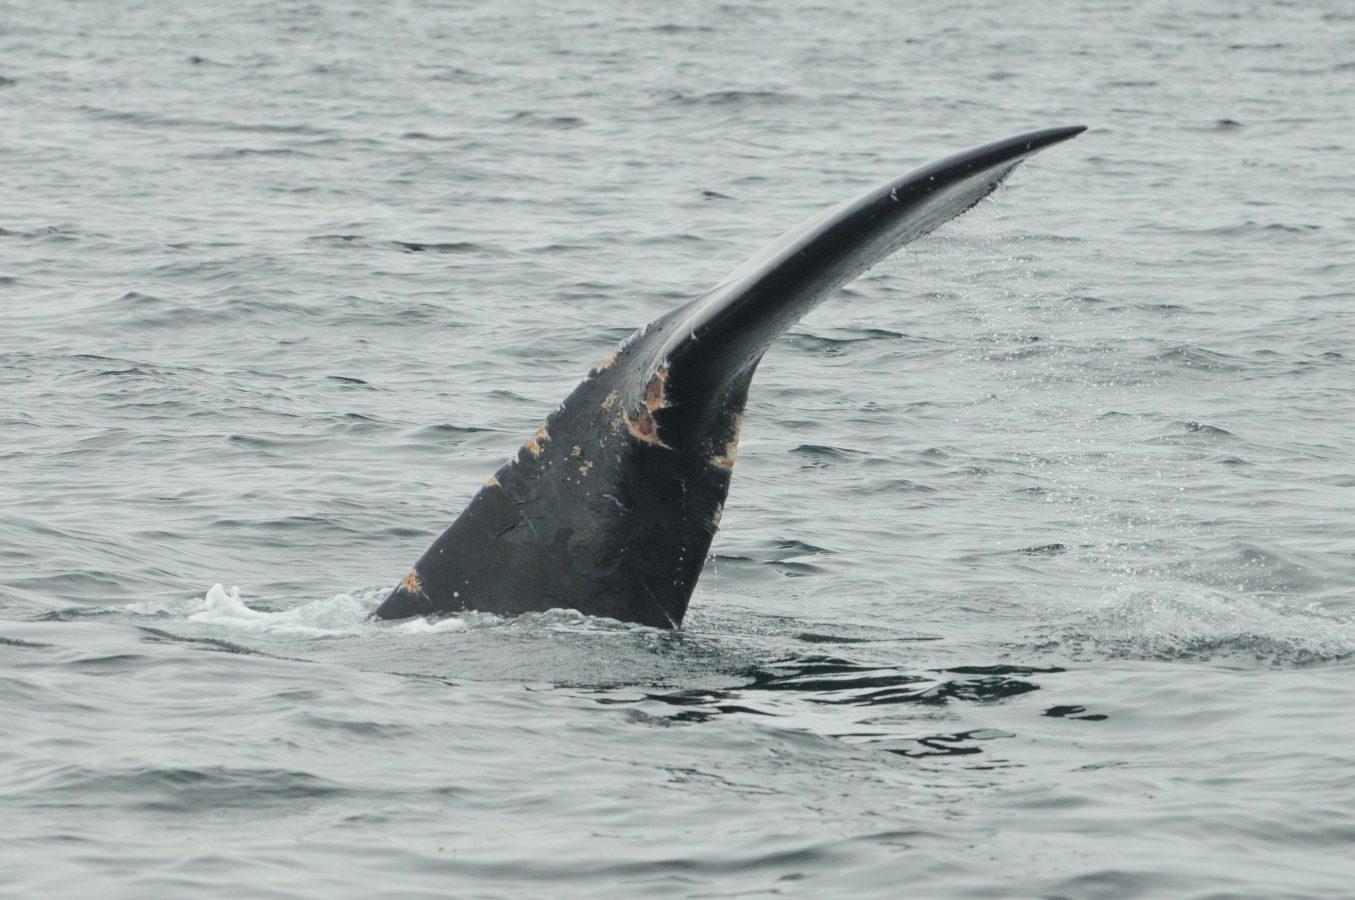 New wounds from fishing gear entanglement are visible on a North Atlantic right whale.